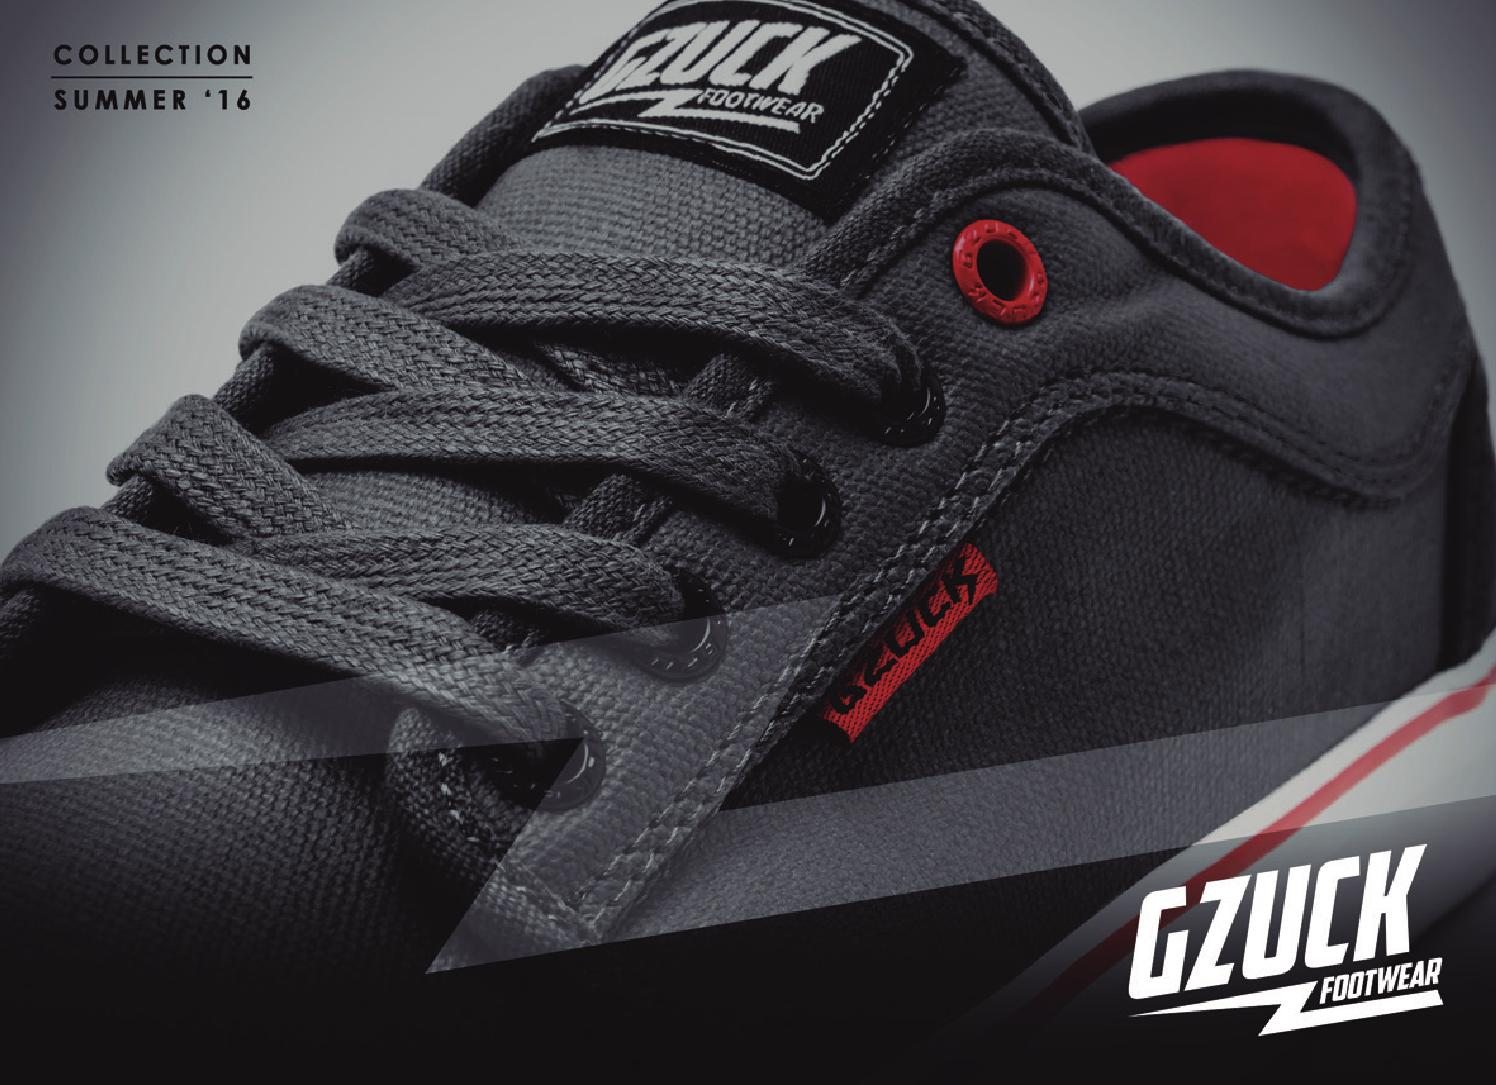 Cat 225 Logo Gzuck Footwear Colecci 243 N Verano 16 By Gzuck Issuu